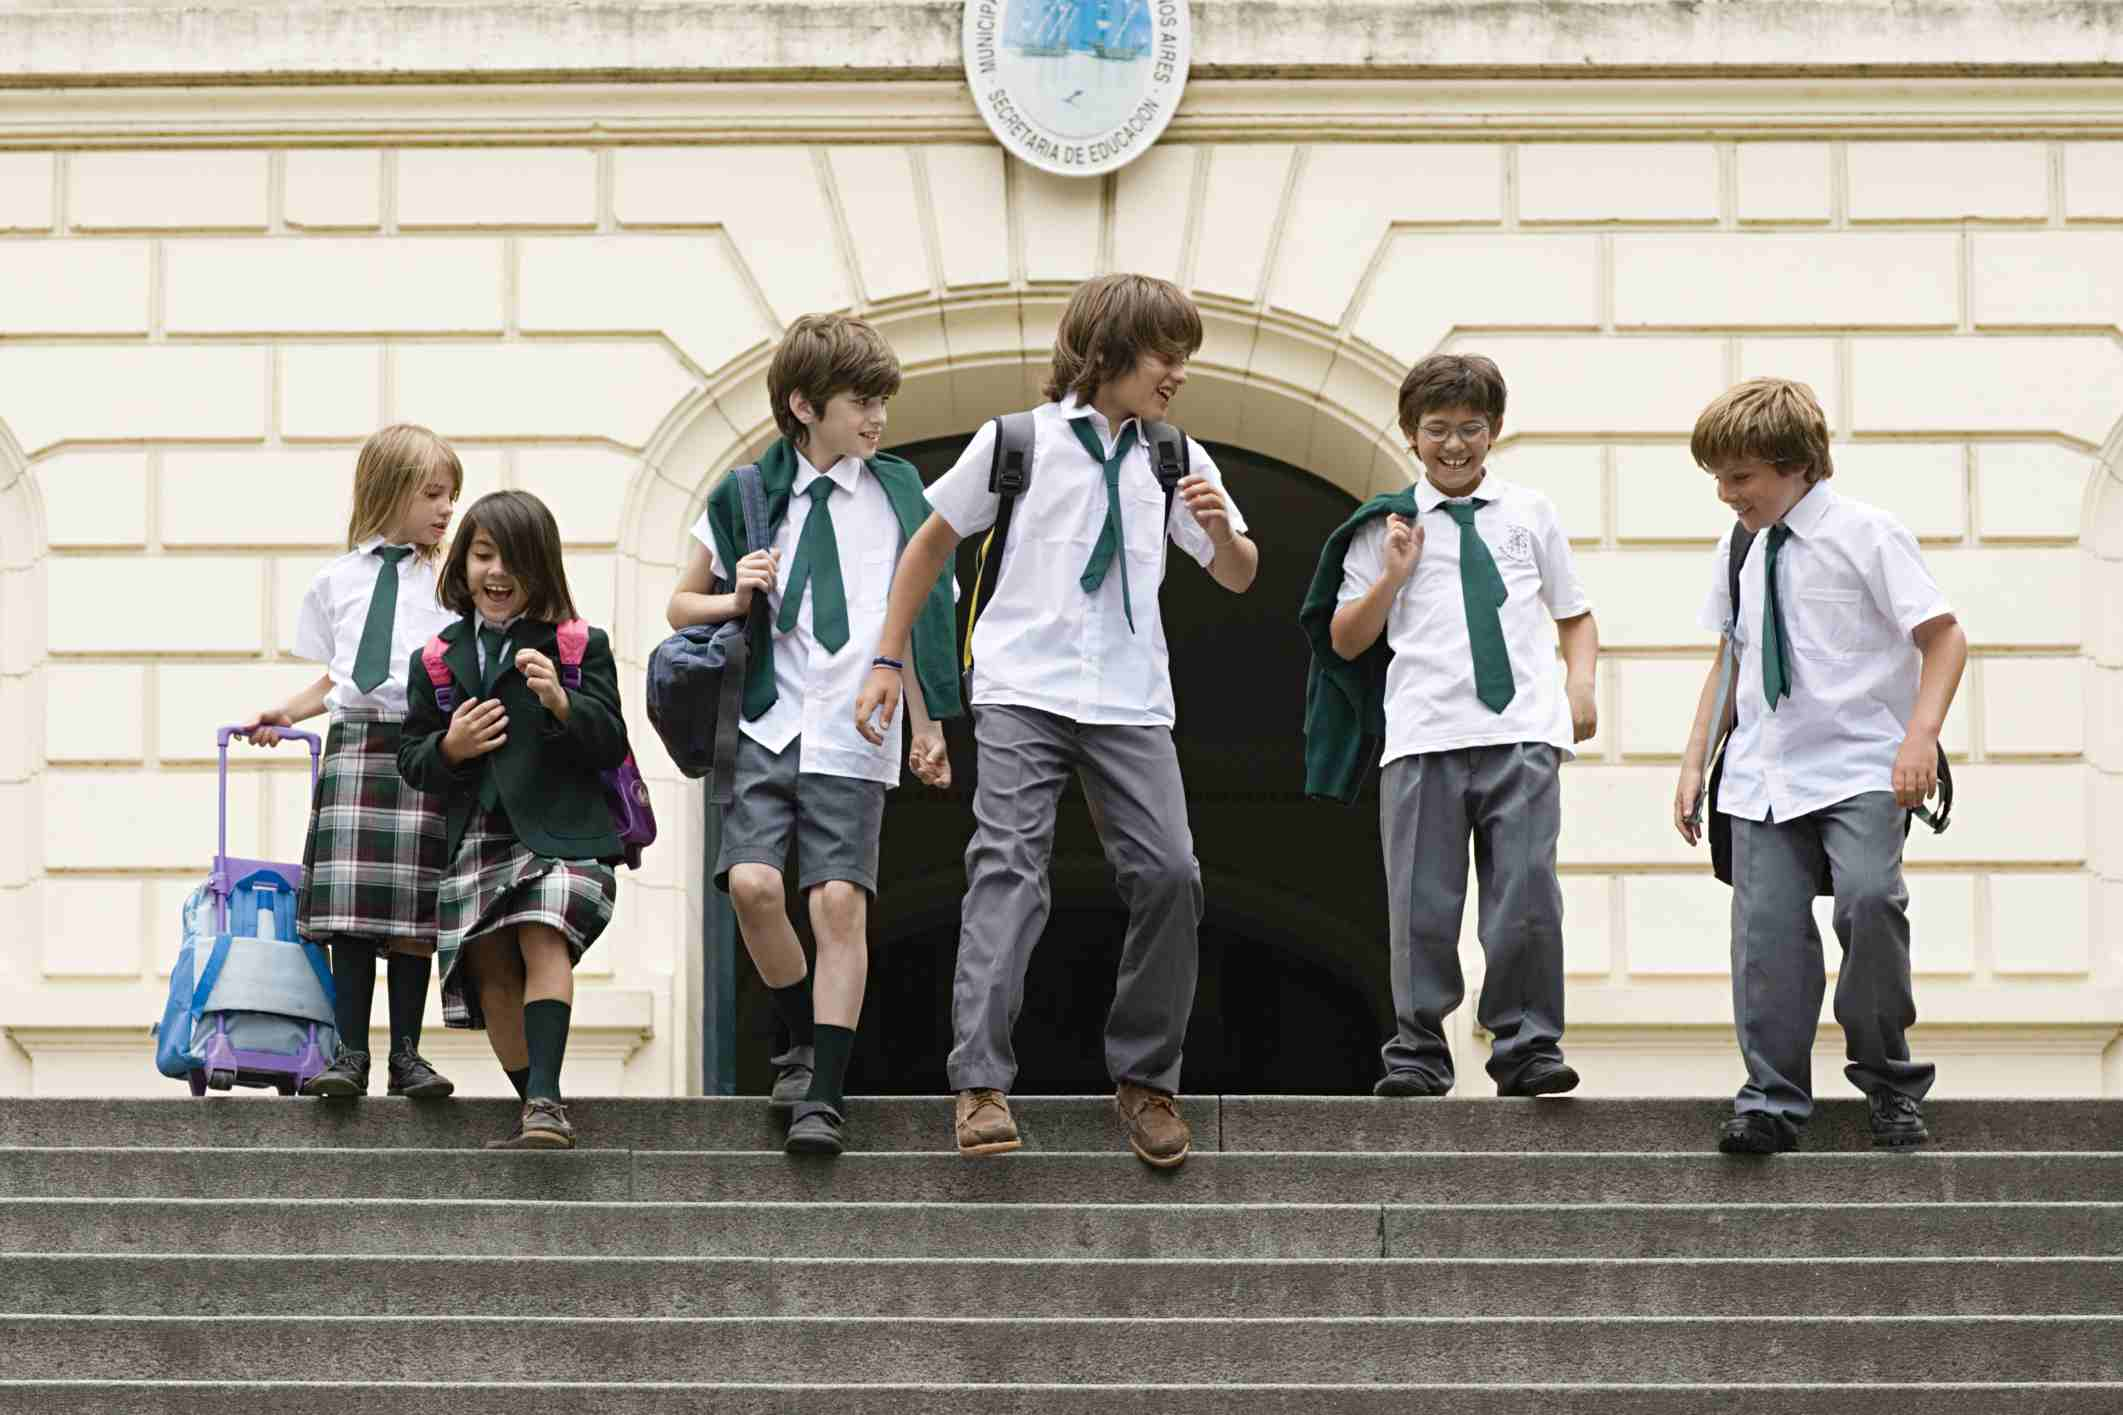 Arguments Against Wearing a School Uniform